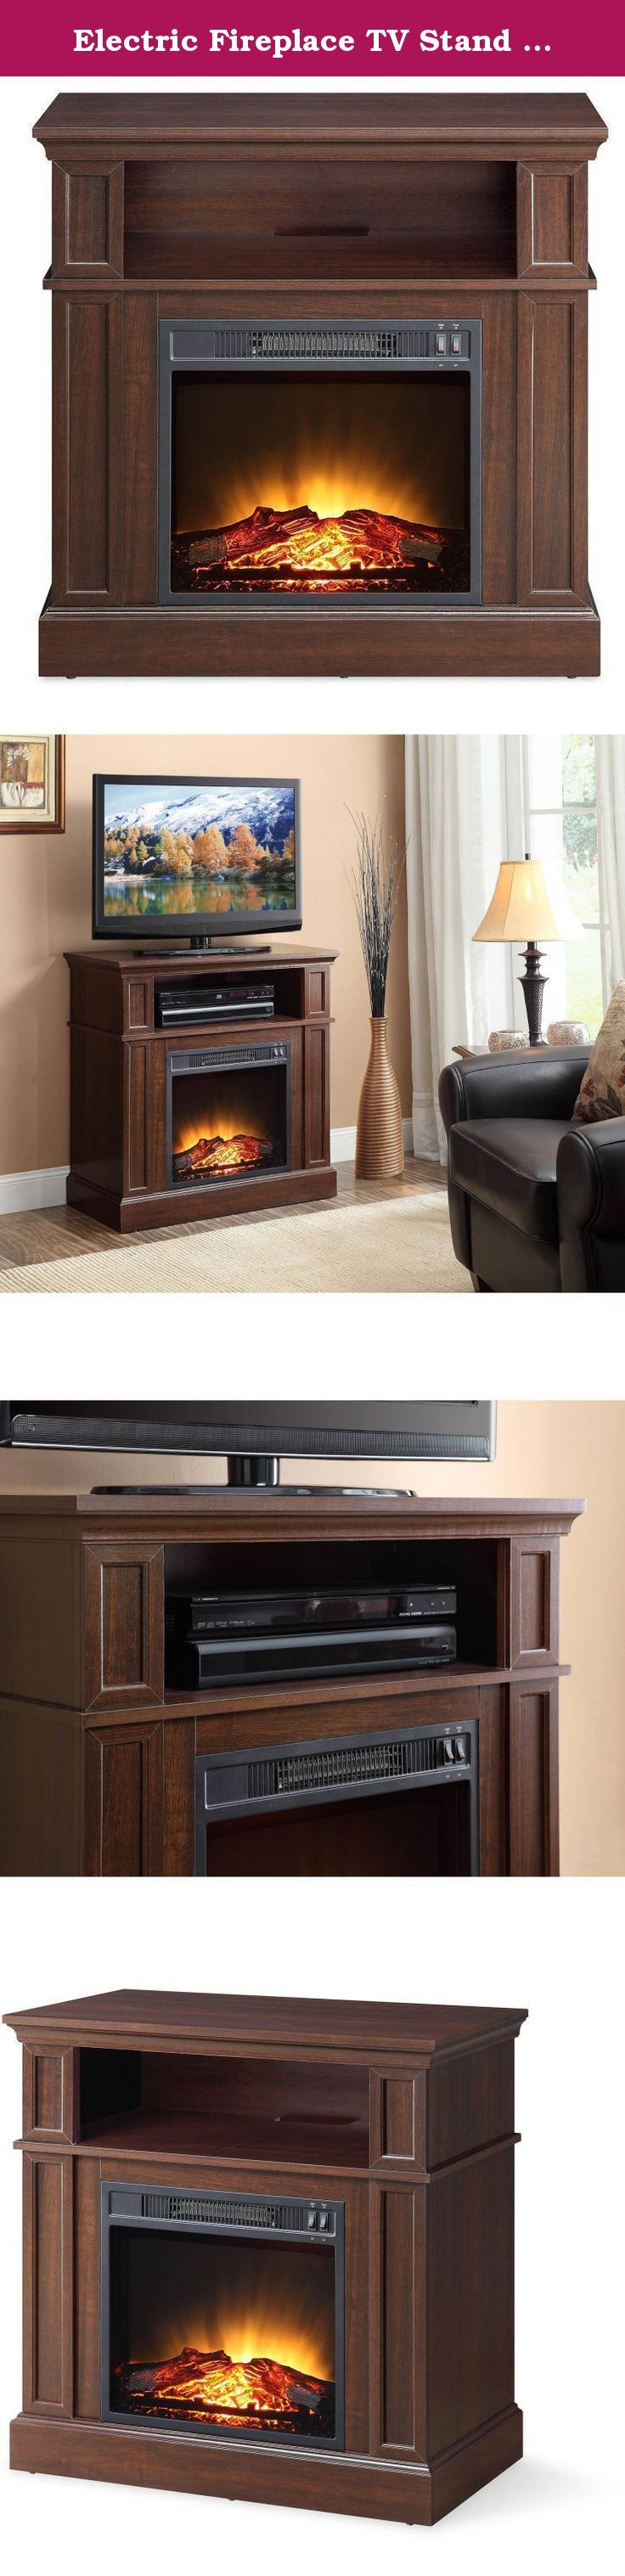 17 Best Ideas About Fireplace Tv Stand On Pinterest Entertainment Wall Homemade Furniture And